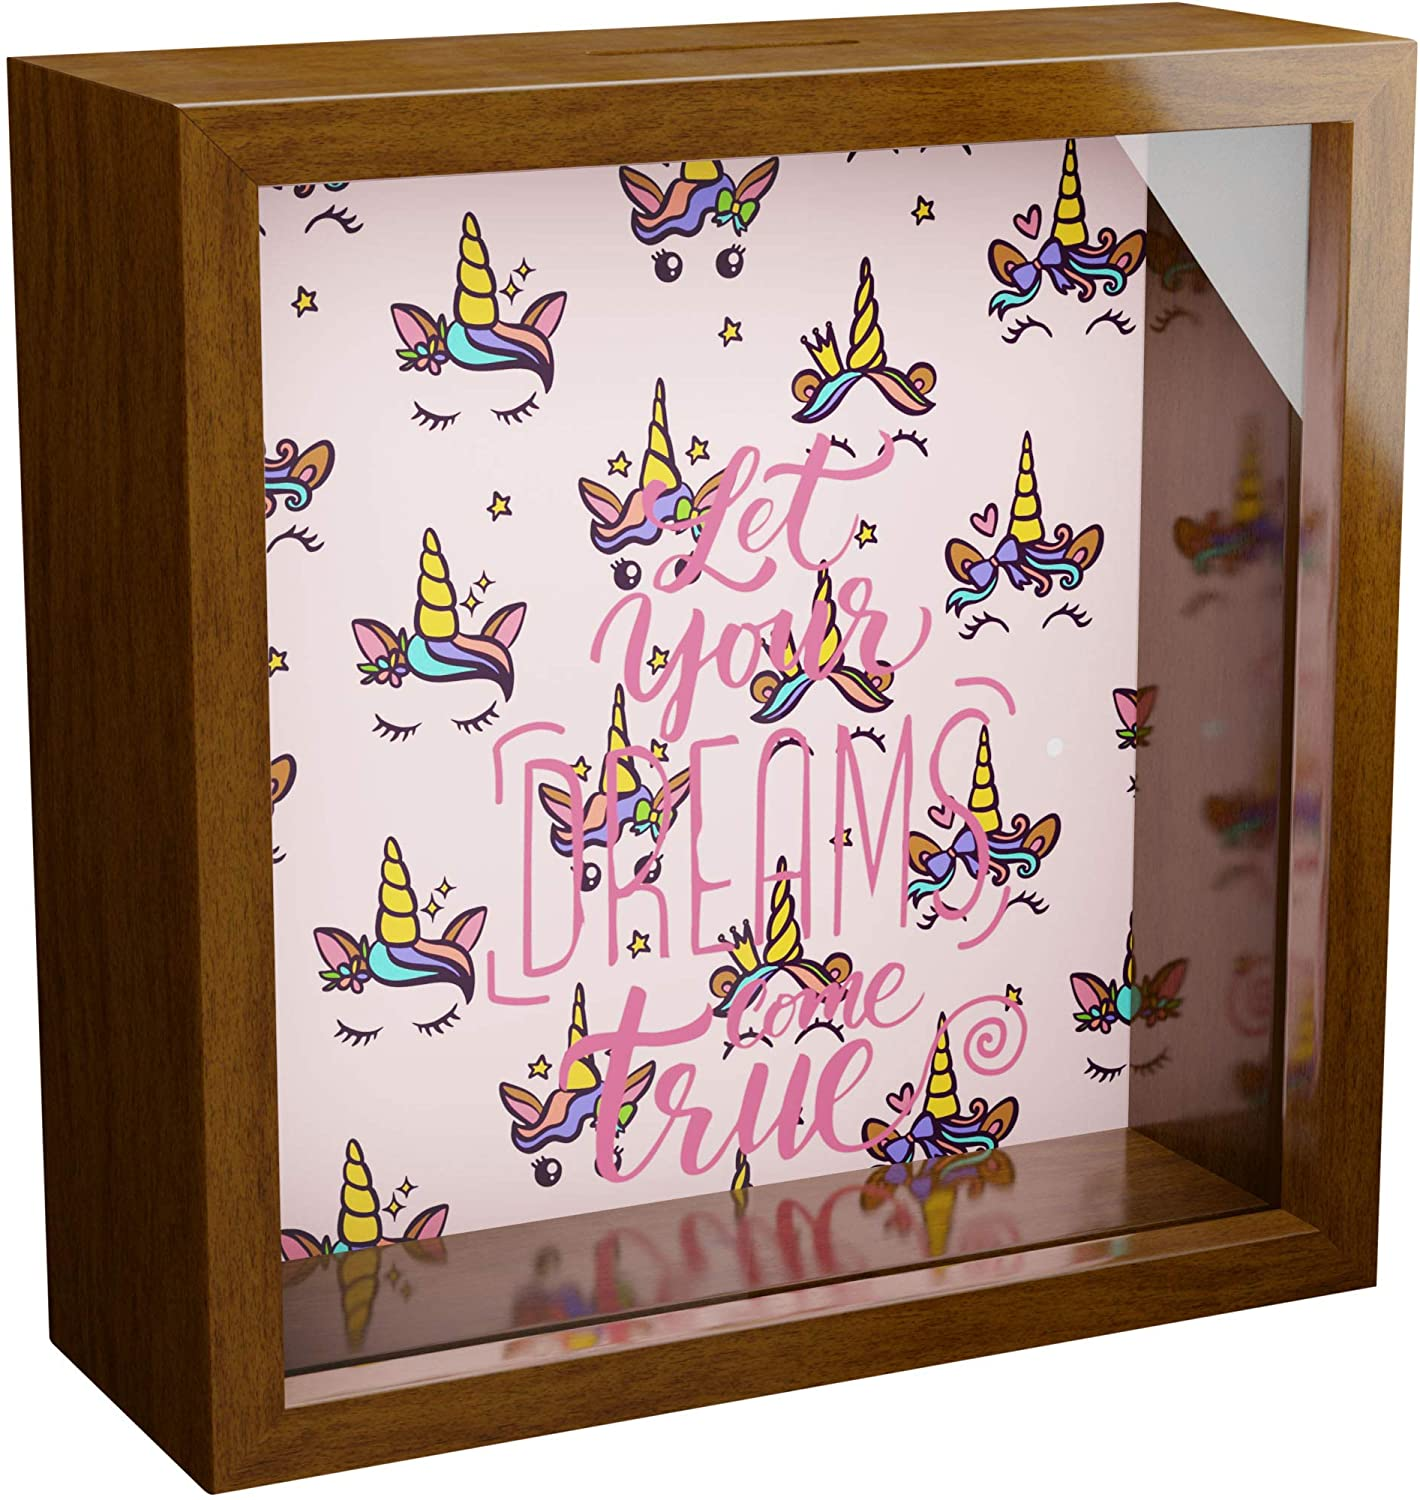 Unicorn Wall Decor | 6x6x2 Memorabilia Shadow Box | Wooden Keepsake Box with Glass Front | Special Unicorns Gifts for Girls and Women | Great Gift for Bedroom and Room Decorations